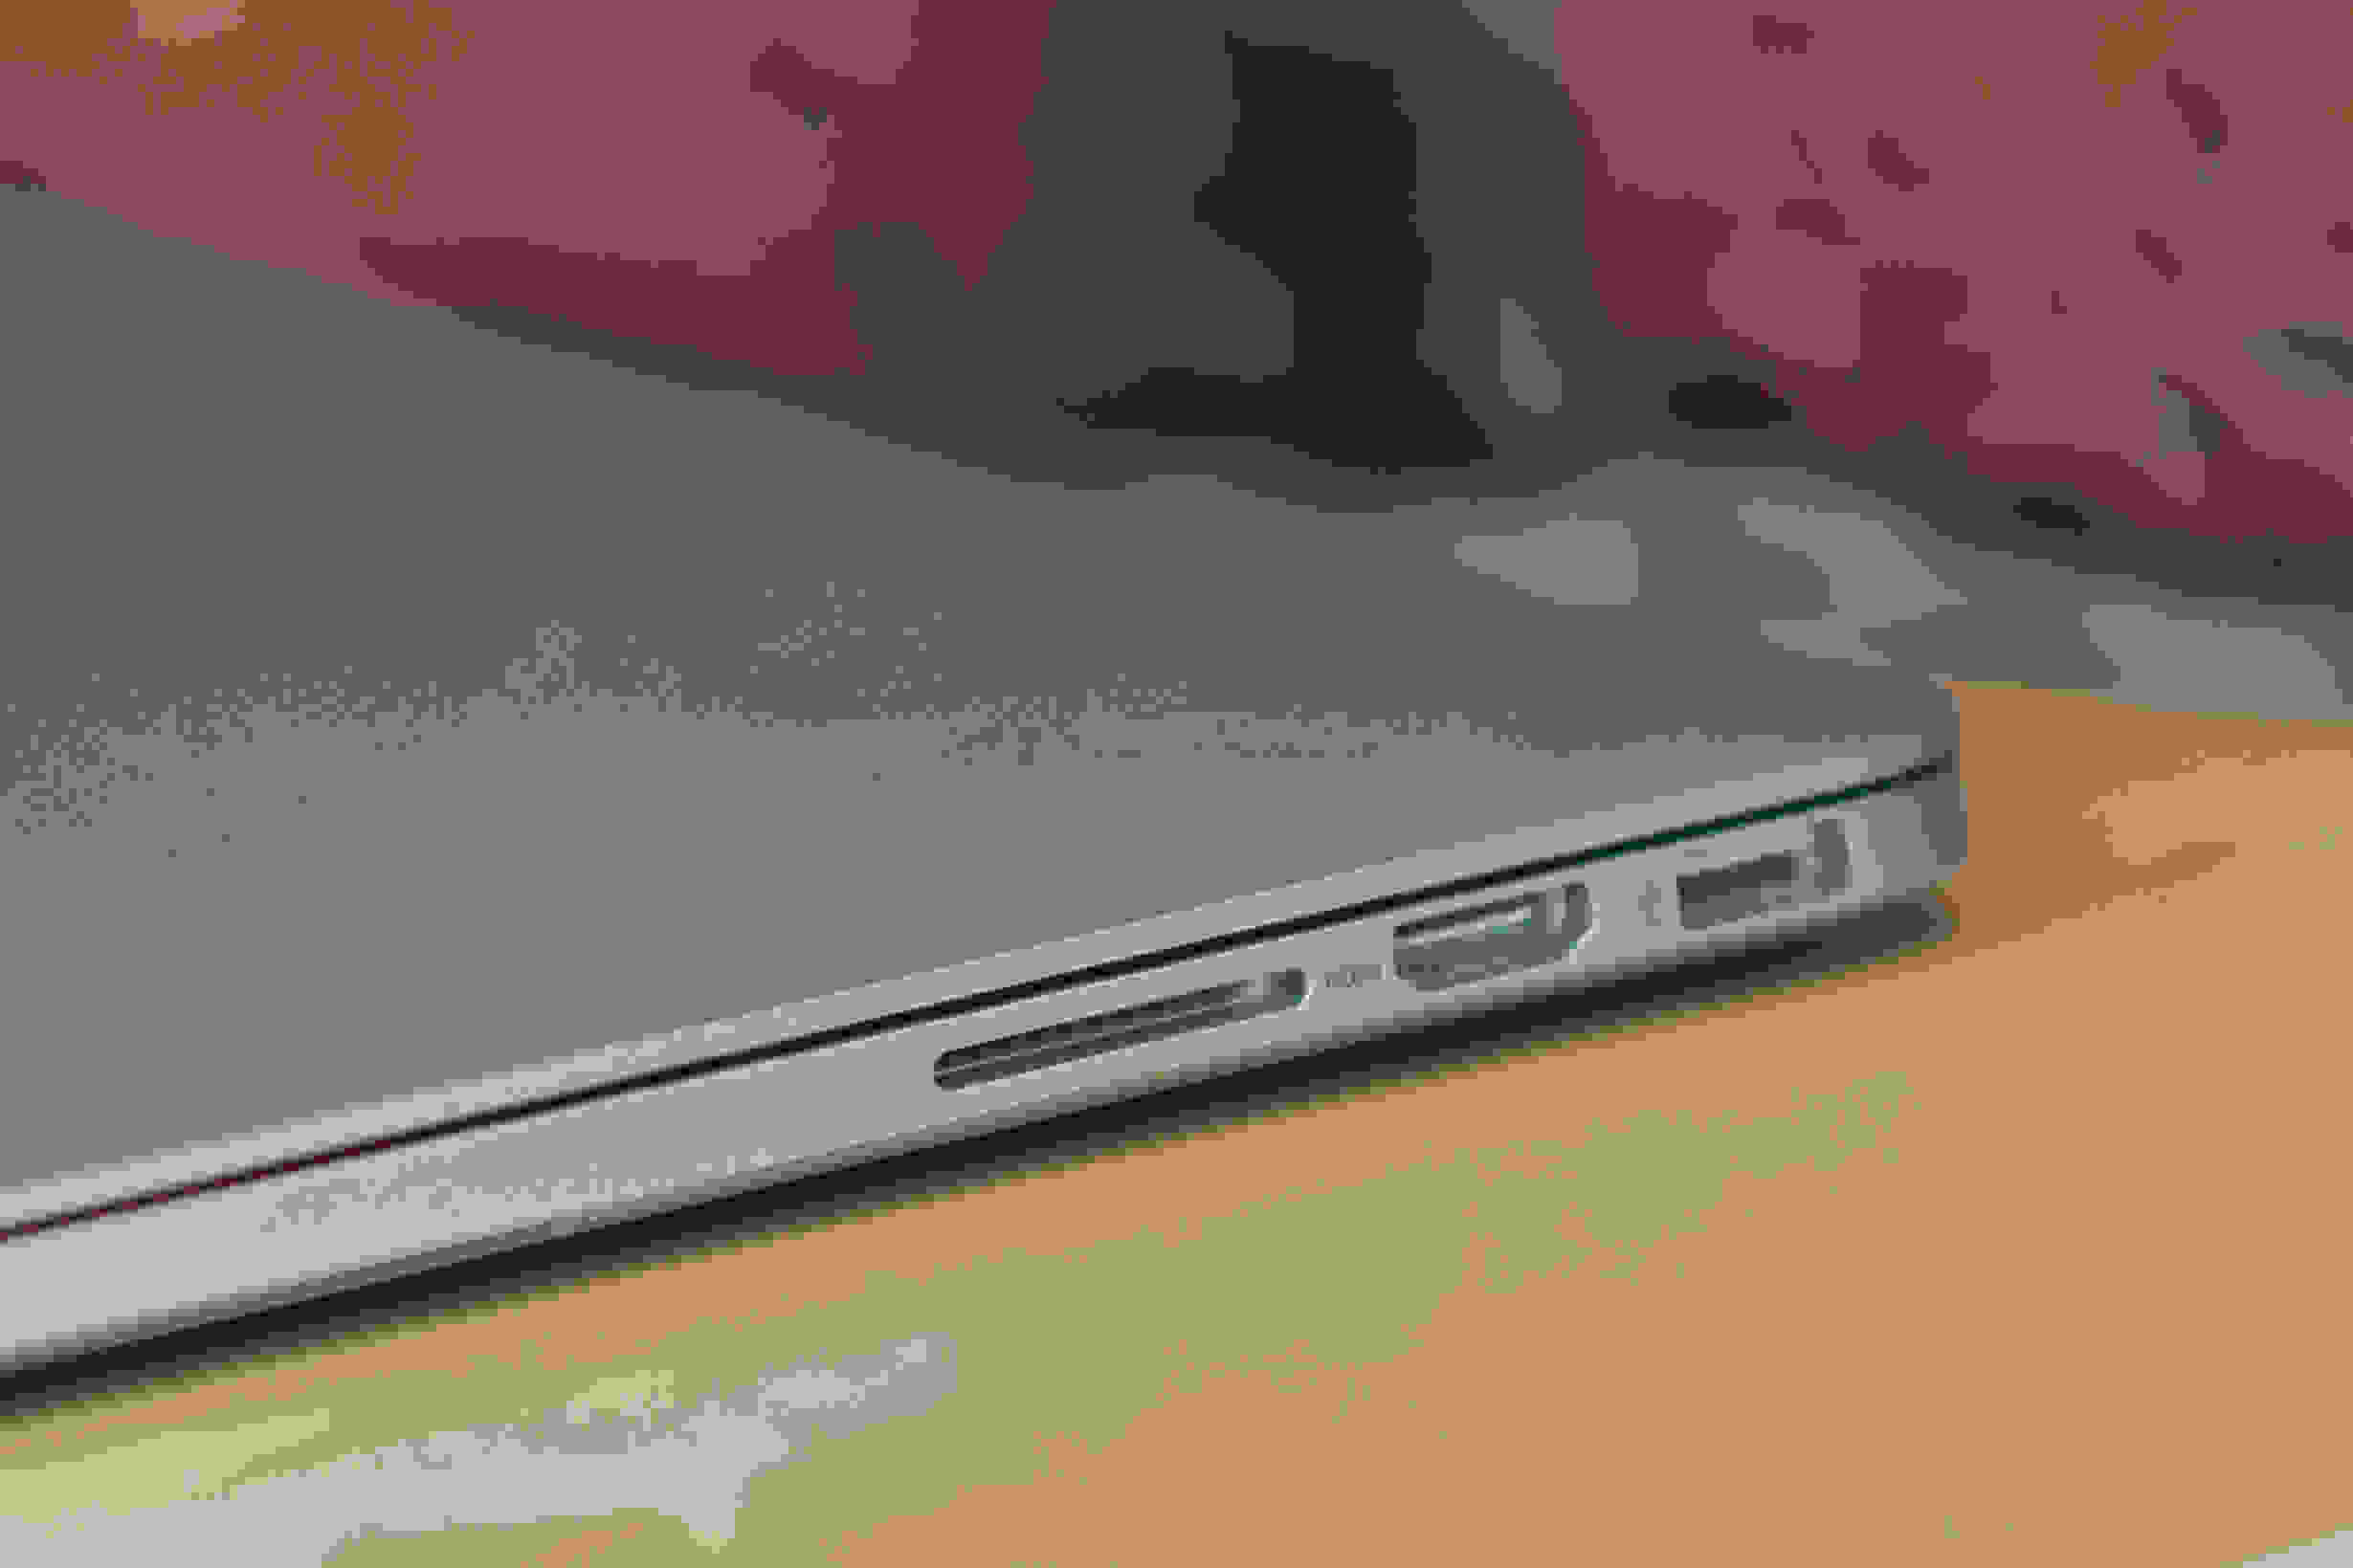 A picture of the Apple MacBook Pro with Retina Display's SDXC card slot.